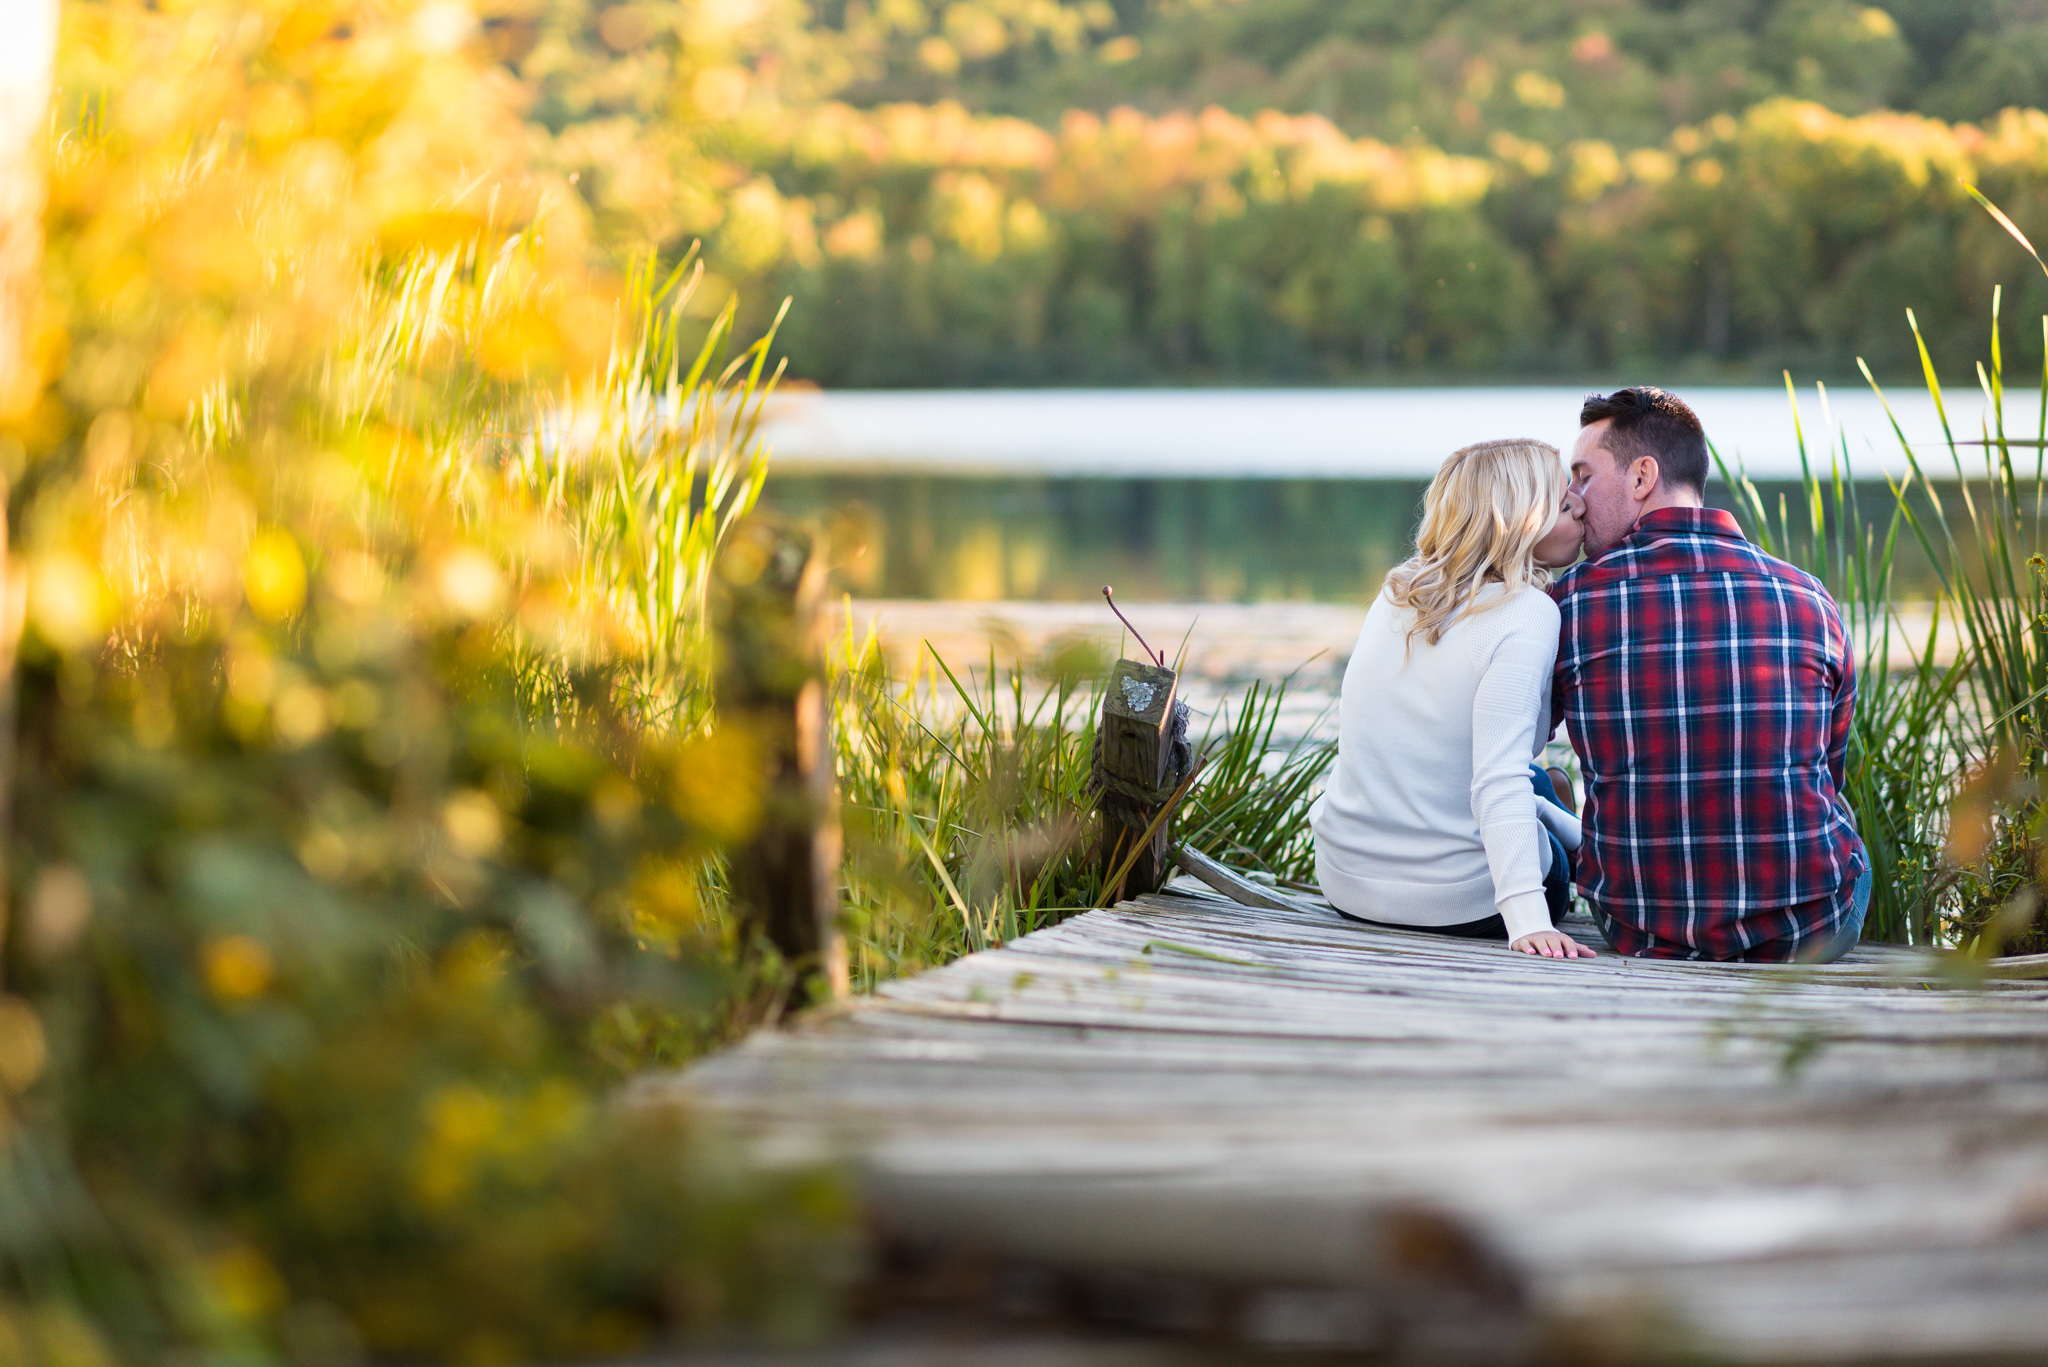 Mindy-Engagement-photography-wedding-photographer-northeast-PA-Scranton-Poconos-28.jpg